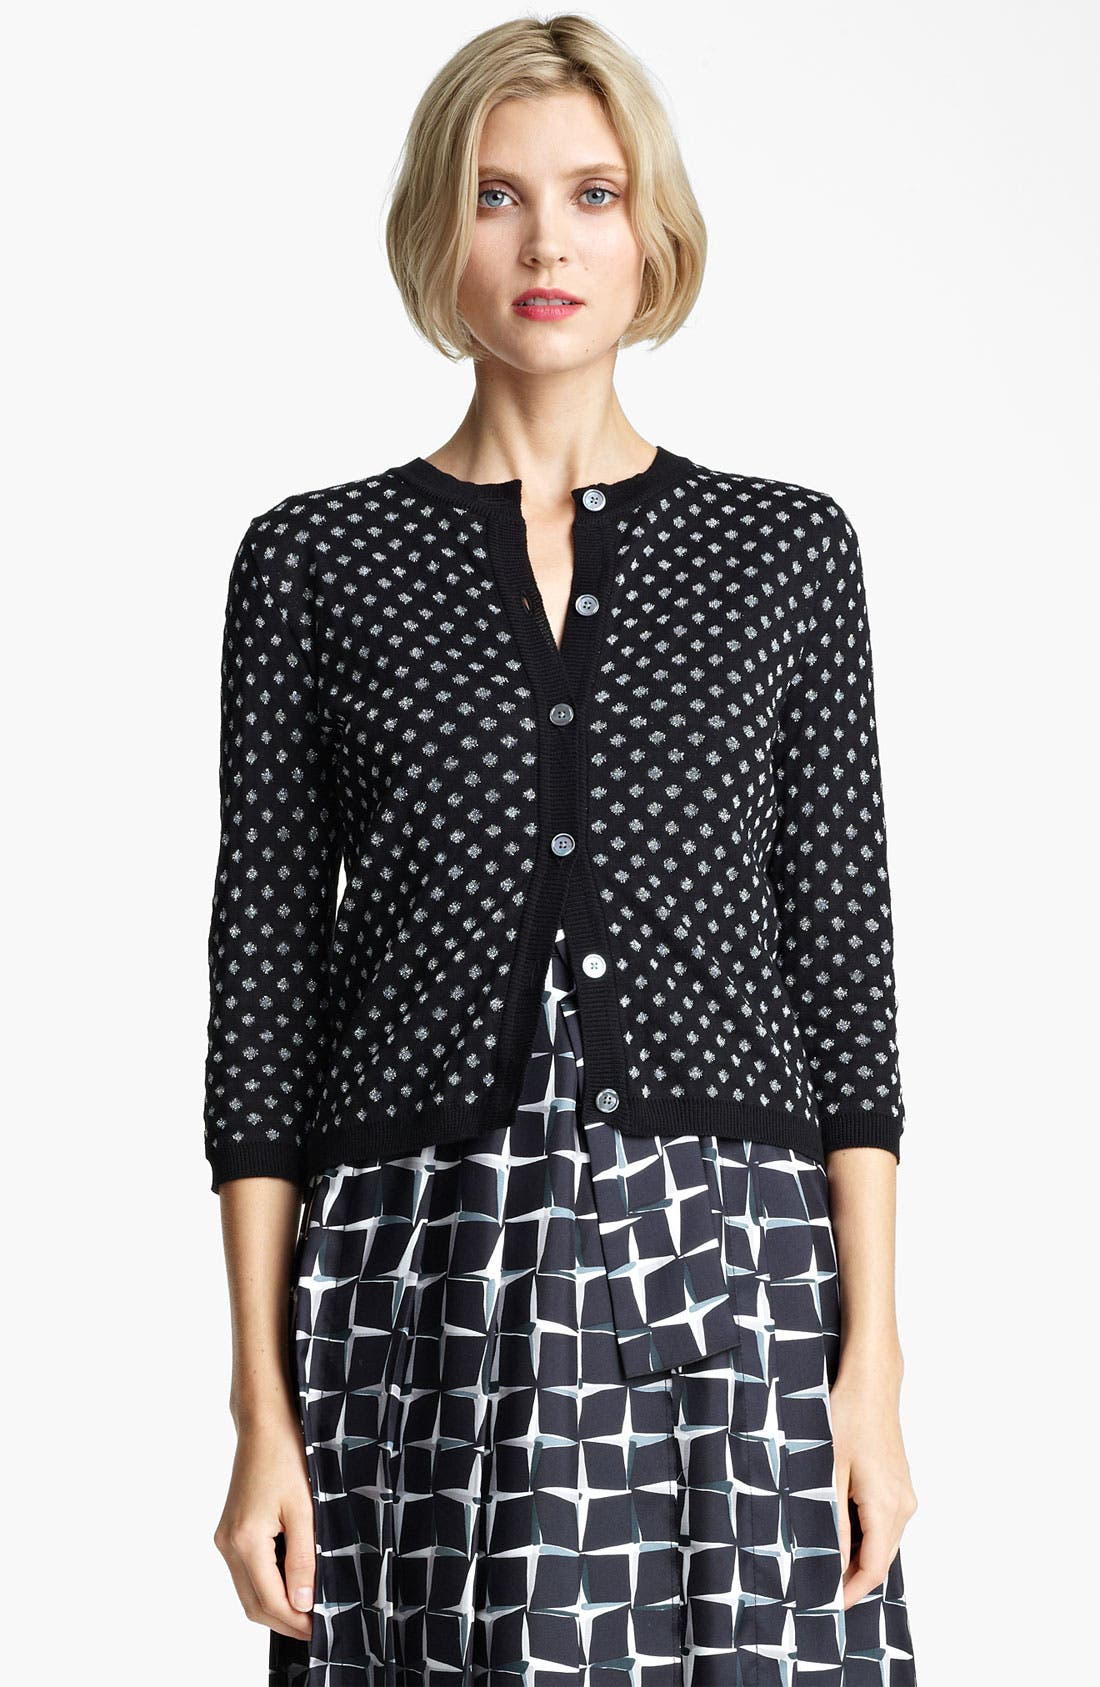 Alternate Image 1 Selected - MARC JACOBS Polka Dot Jacquard Cardigan